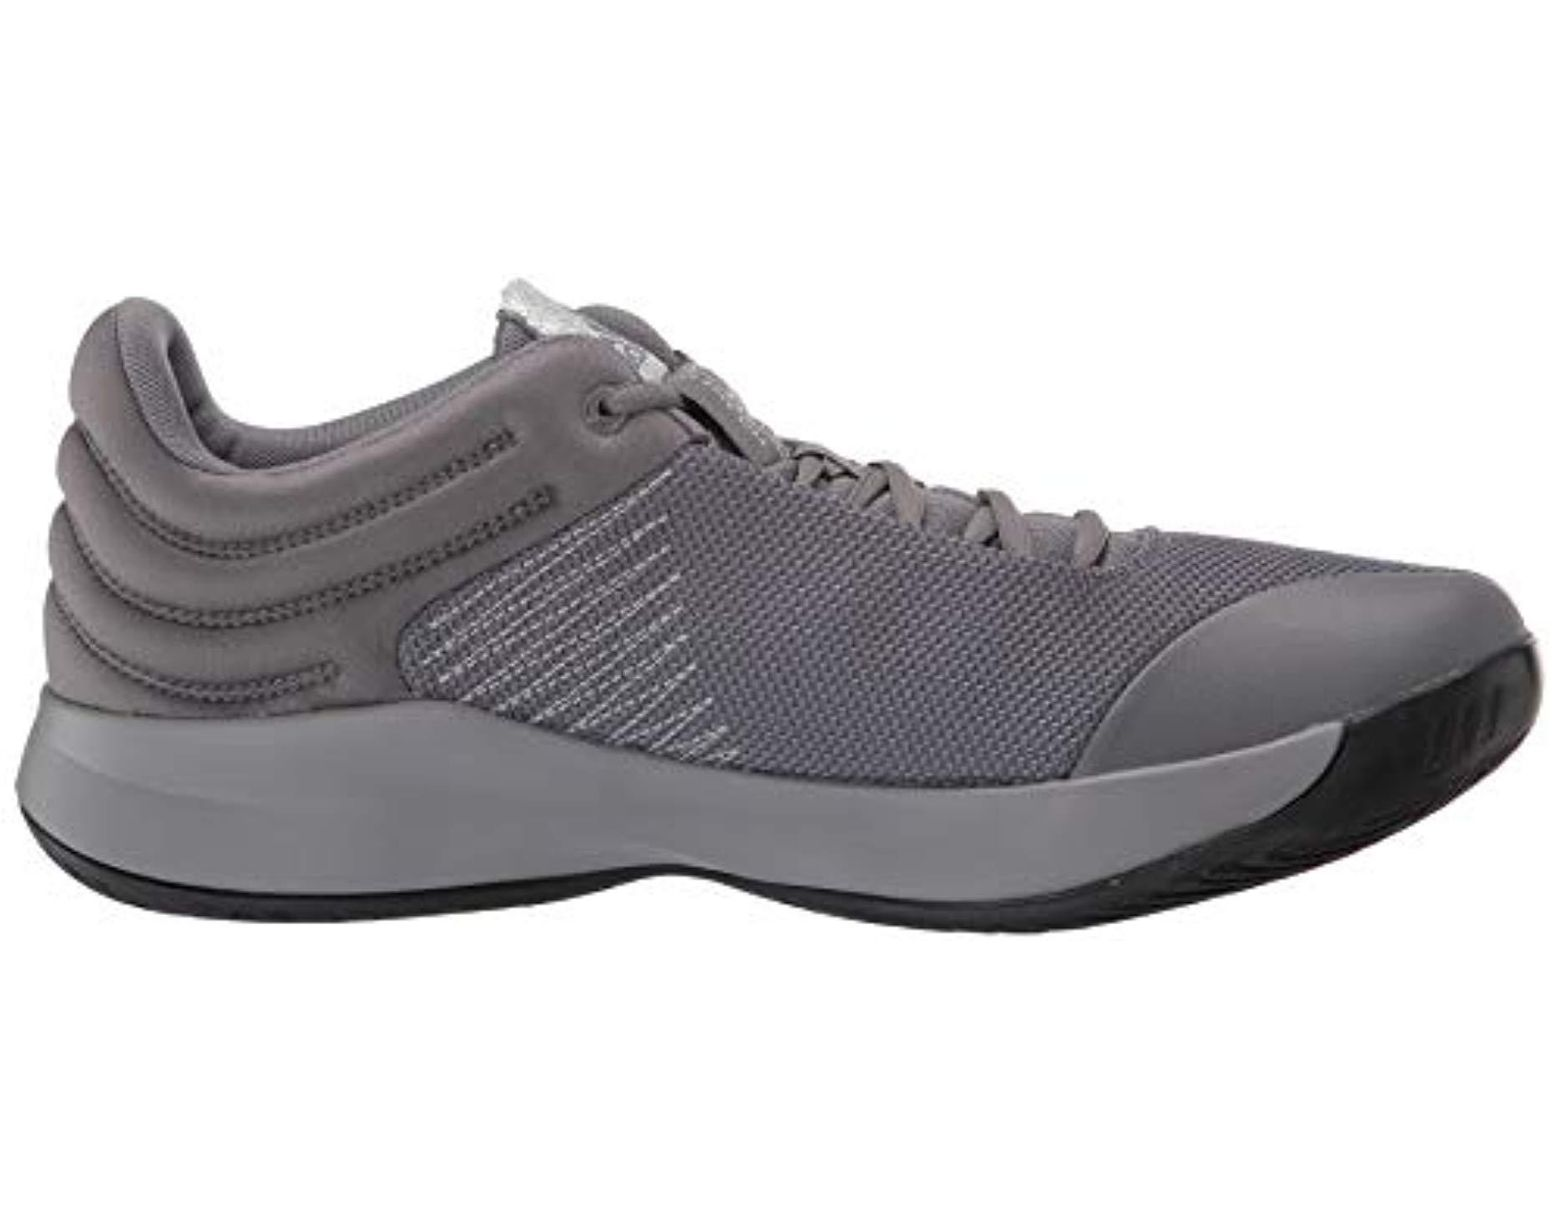 924dd70c62e adidas Pro Spark 2018 Low in Gray for Men - Lyst